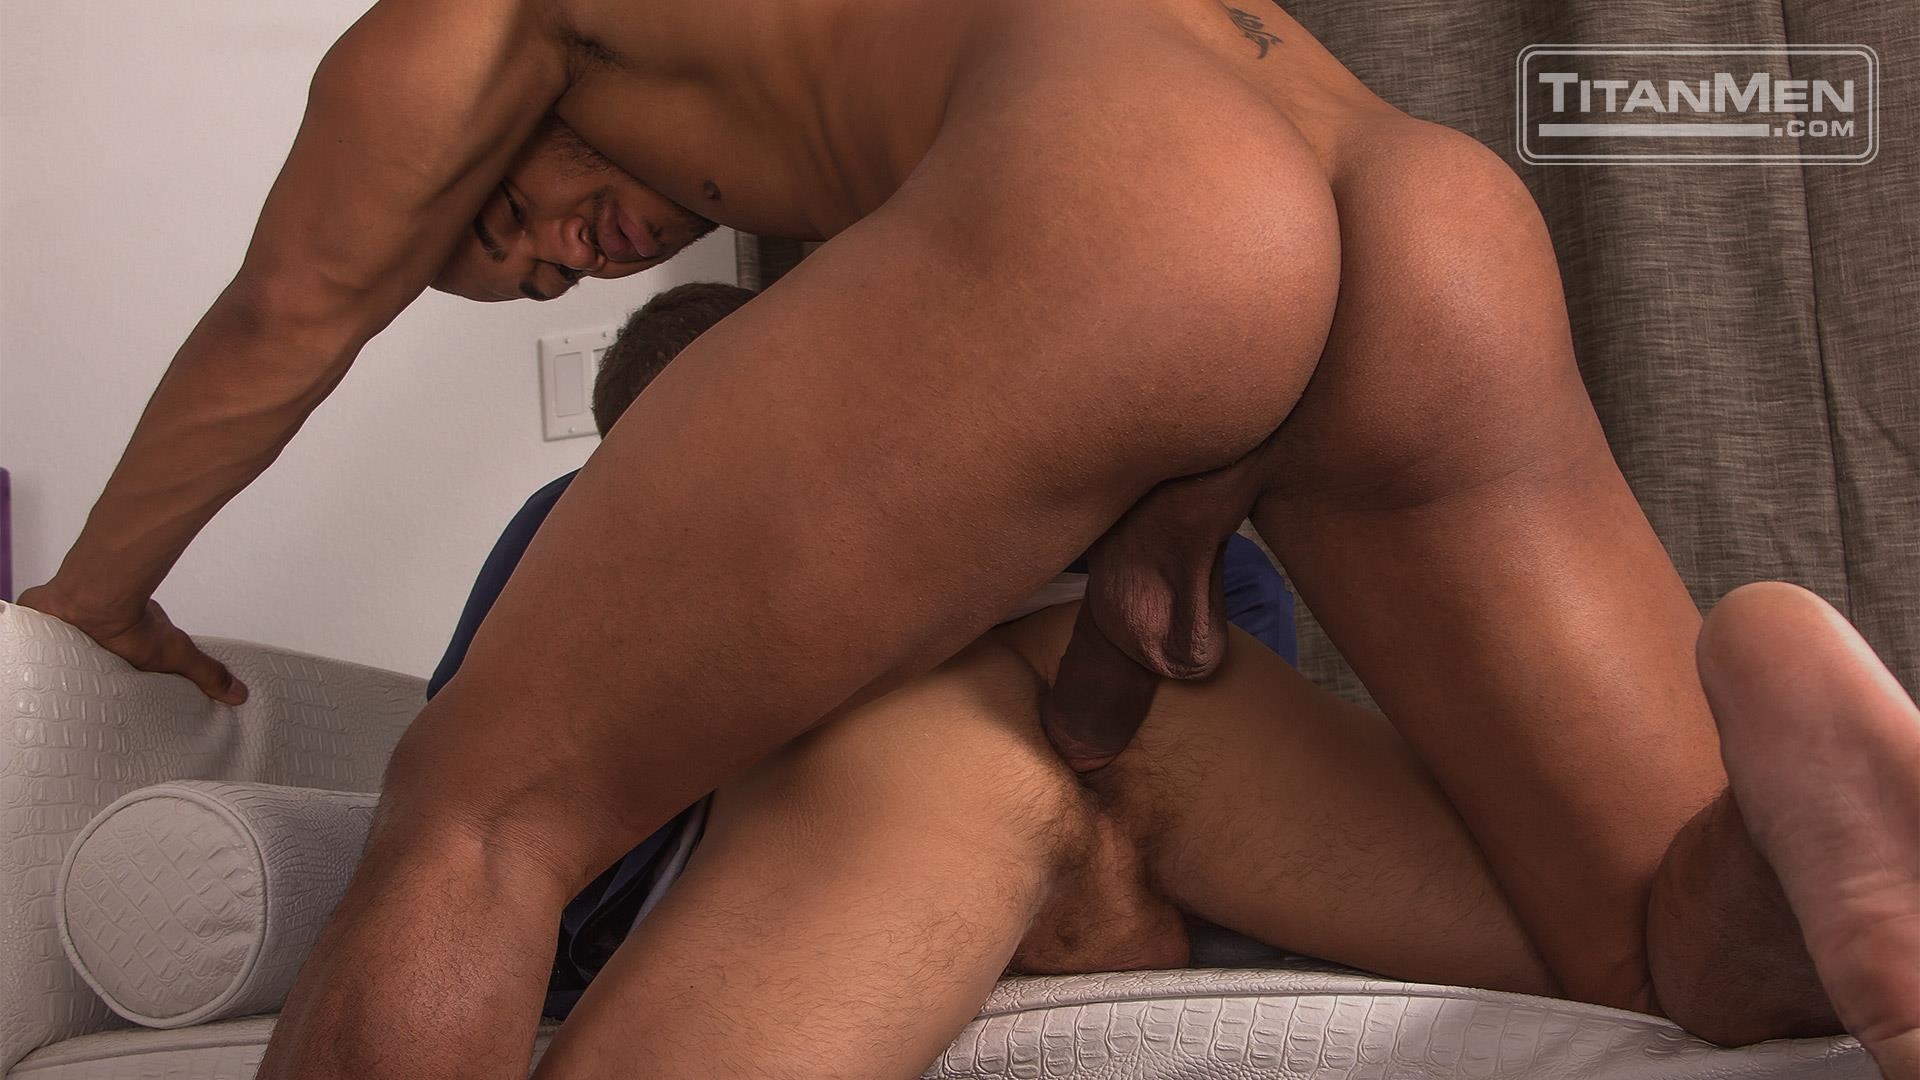 Titan-Men-Jason-Vario-and-Alex-Graham-Thick-Big-Black-Uncut-Cock-Free-Gay-Porn-27 Getting Fucked By A Really Thick Uncut Big Black Cock